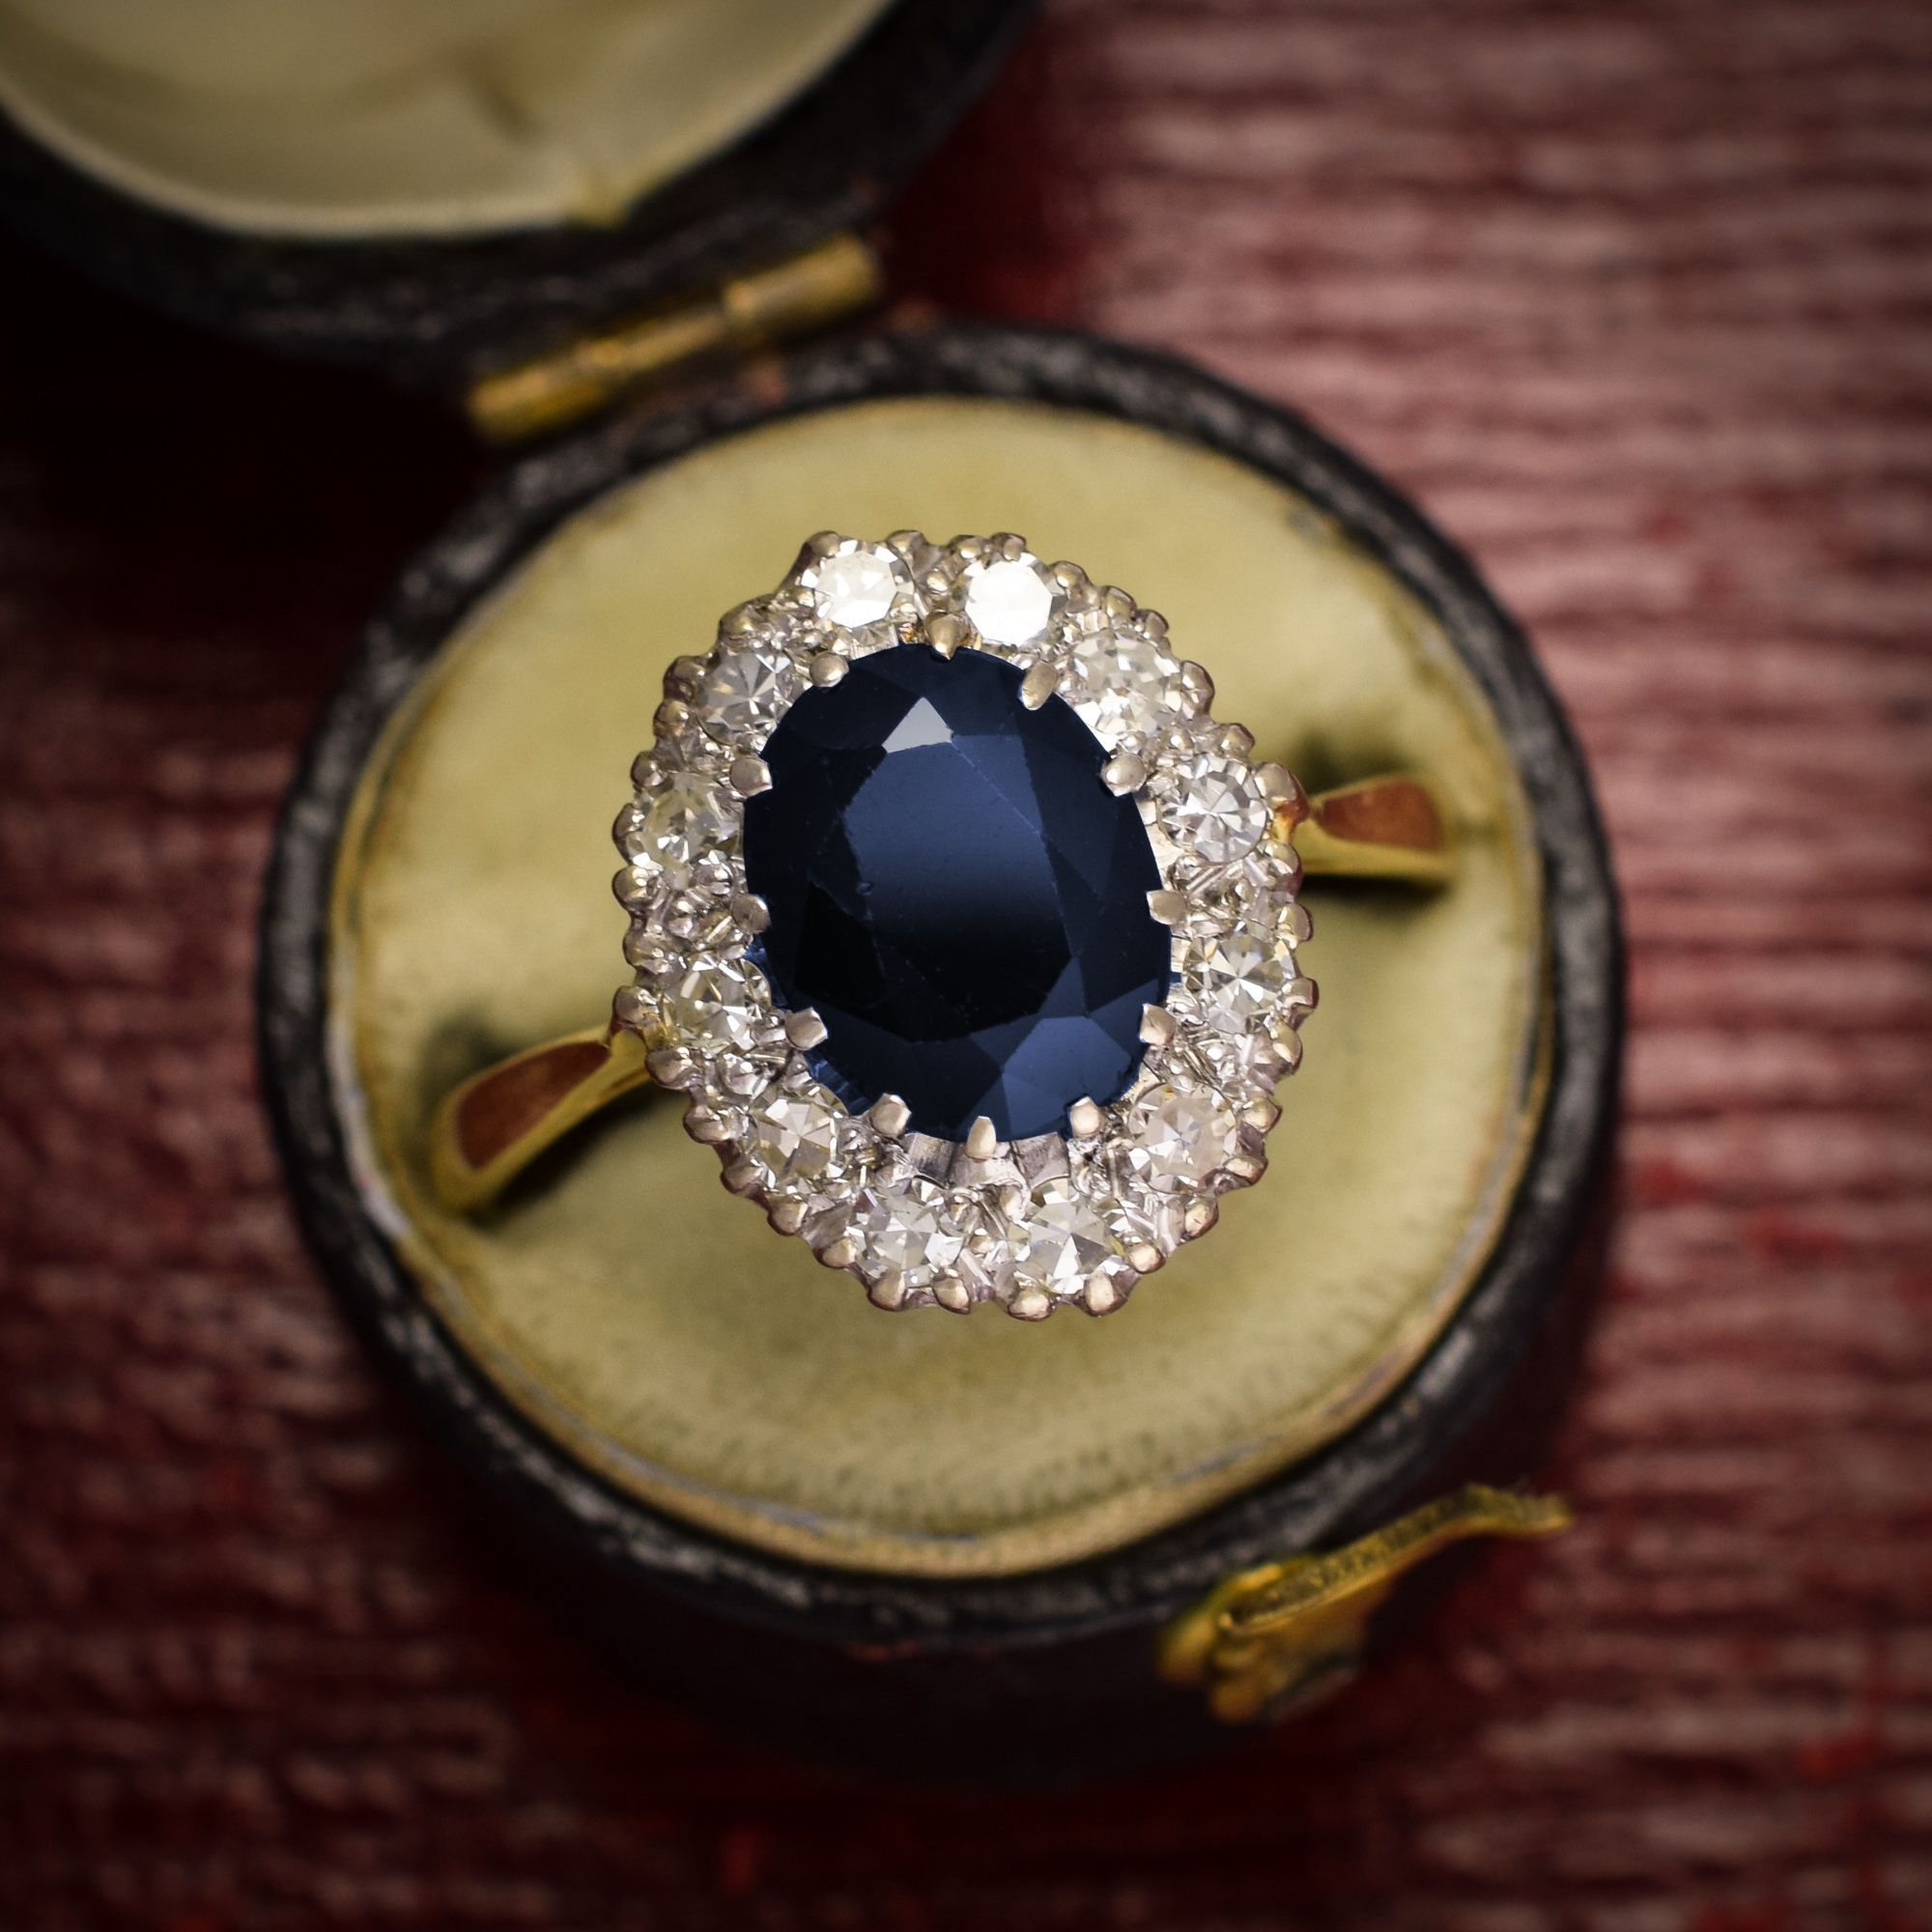 jewelers deep royal world pt mixed of cut cushion blue antique kashmir diadem color unheated wonderful the ct sapphire